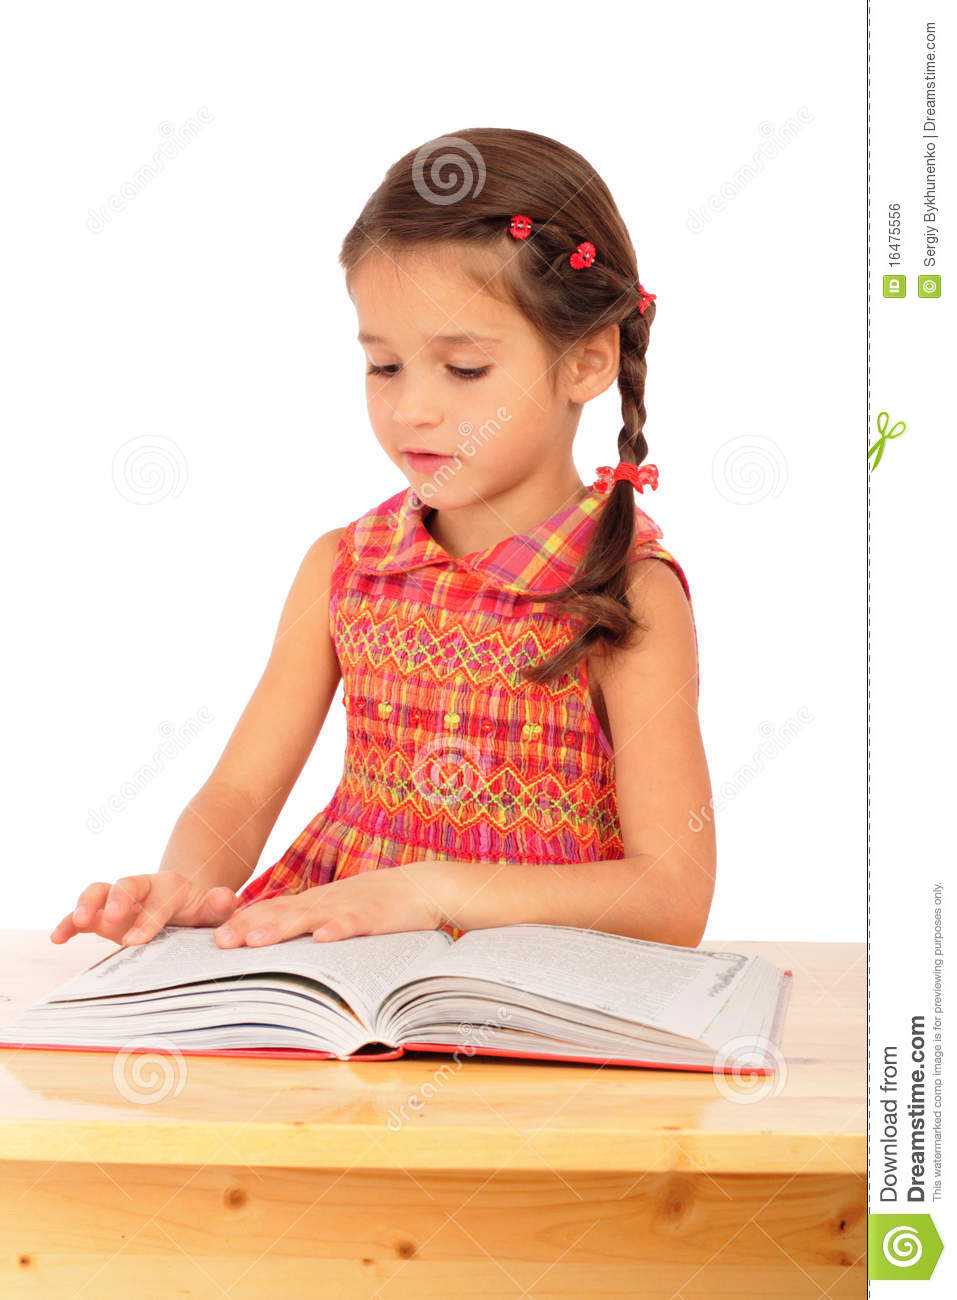 Little Girl Reading Book On The Desk Royalty Free Stock Image - Image ...